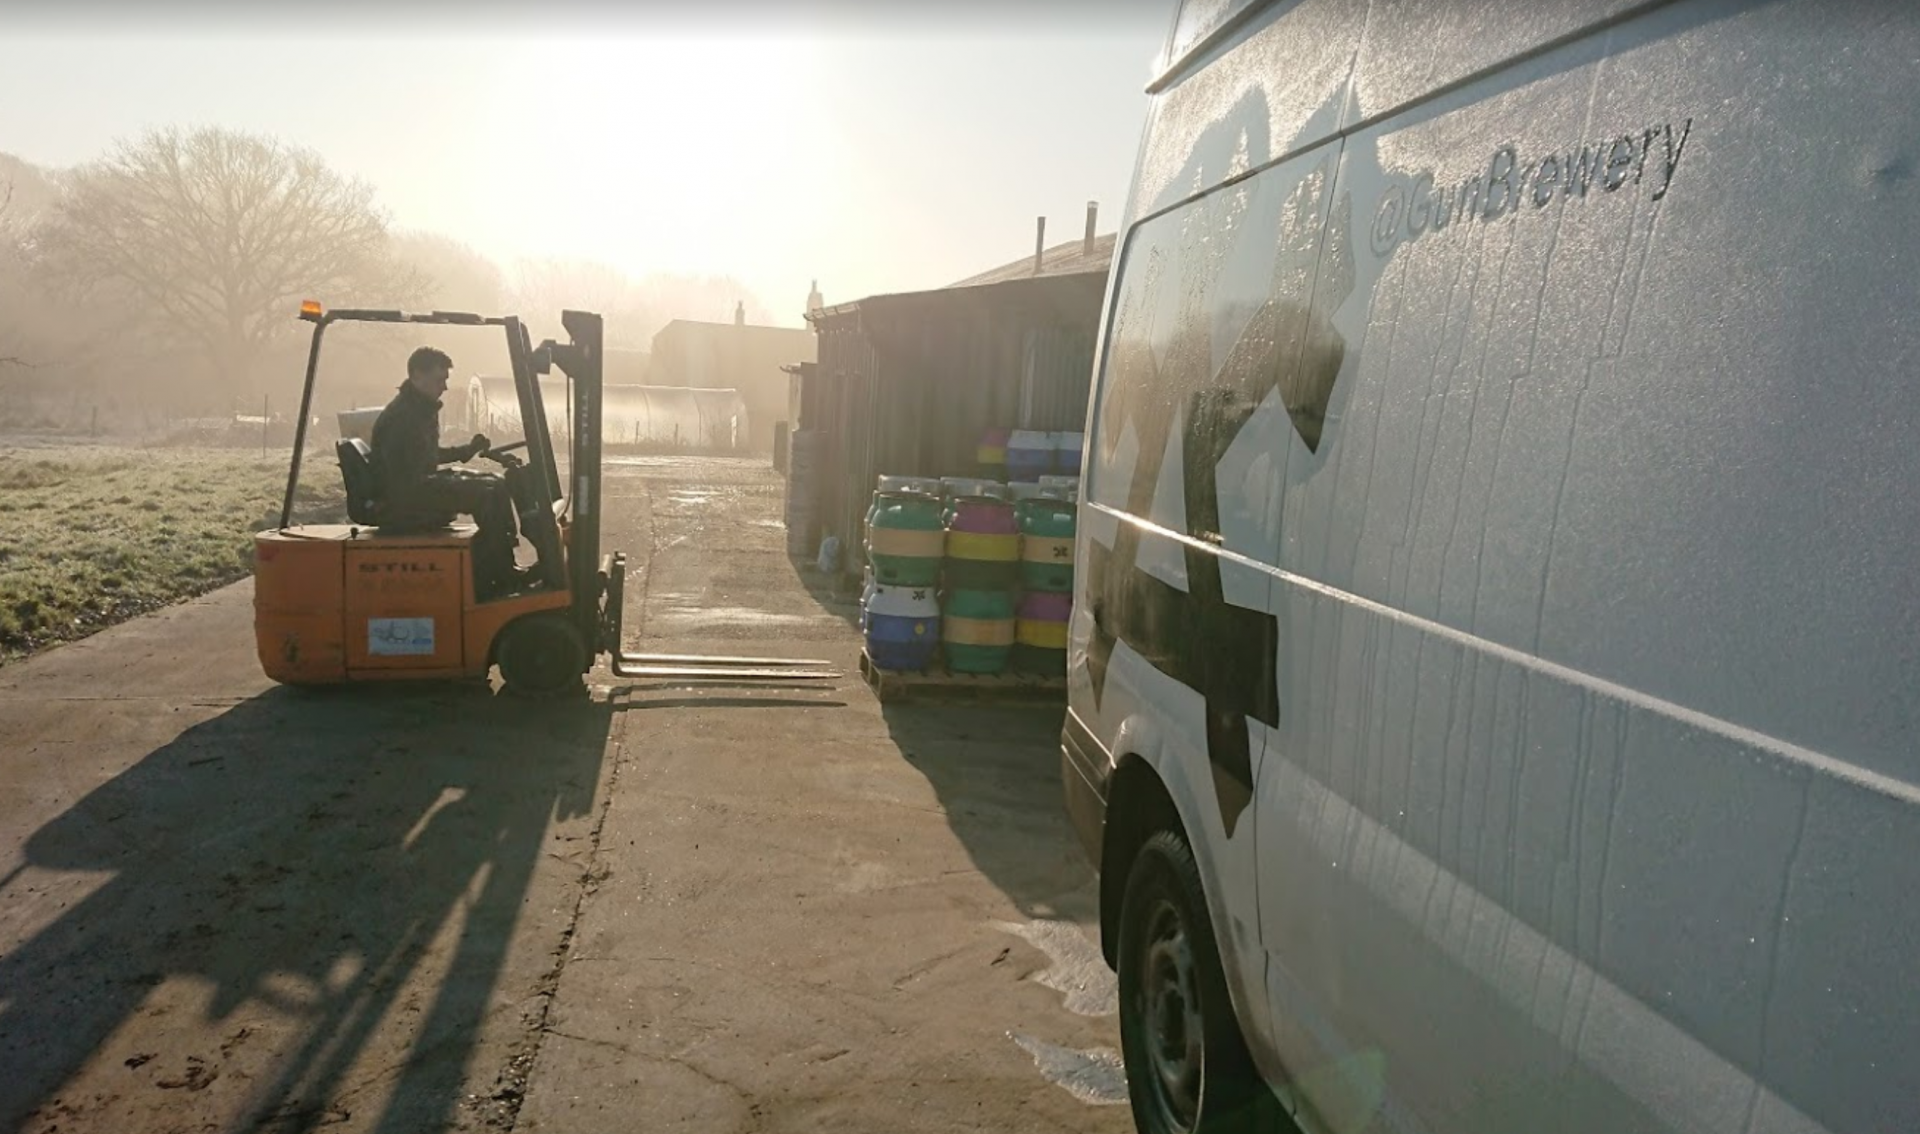 gun brewery forklift and van on frosty morning